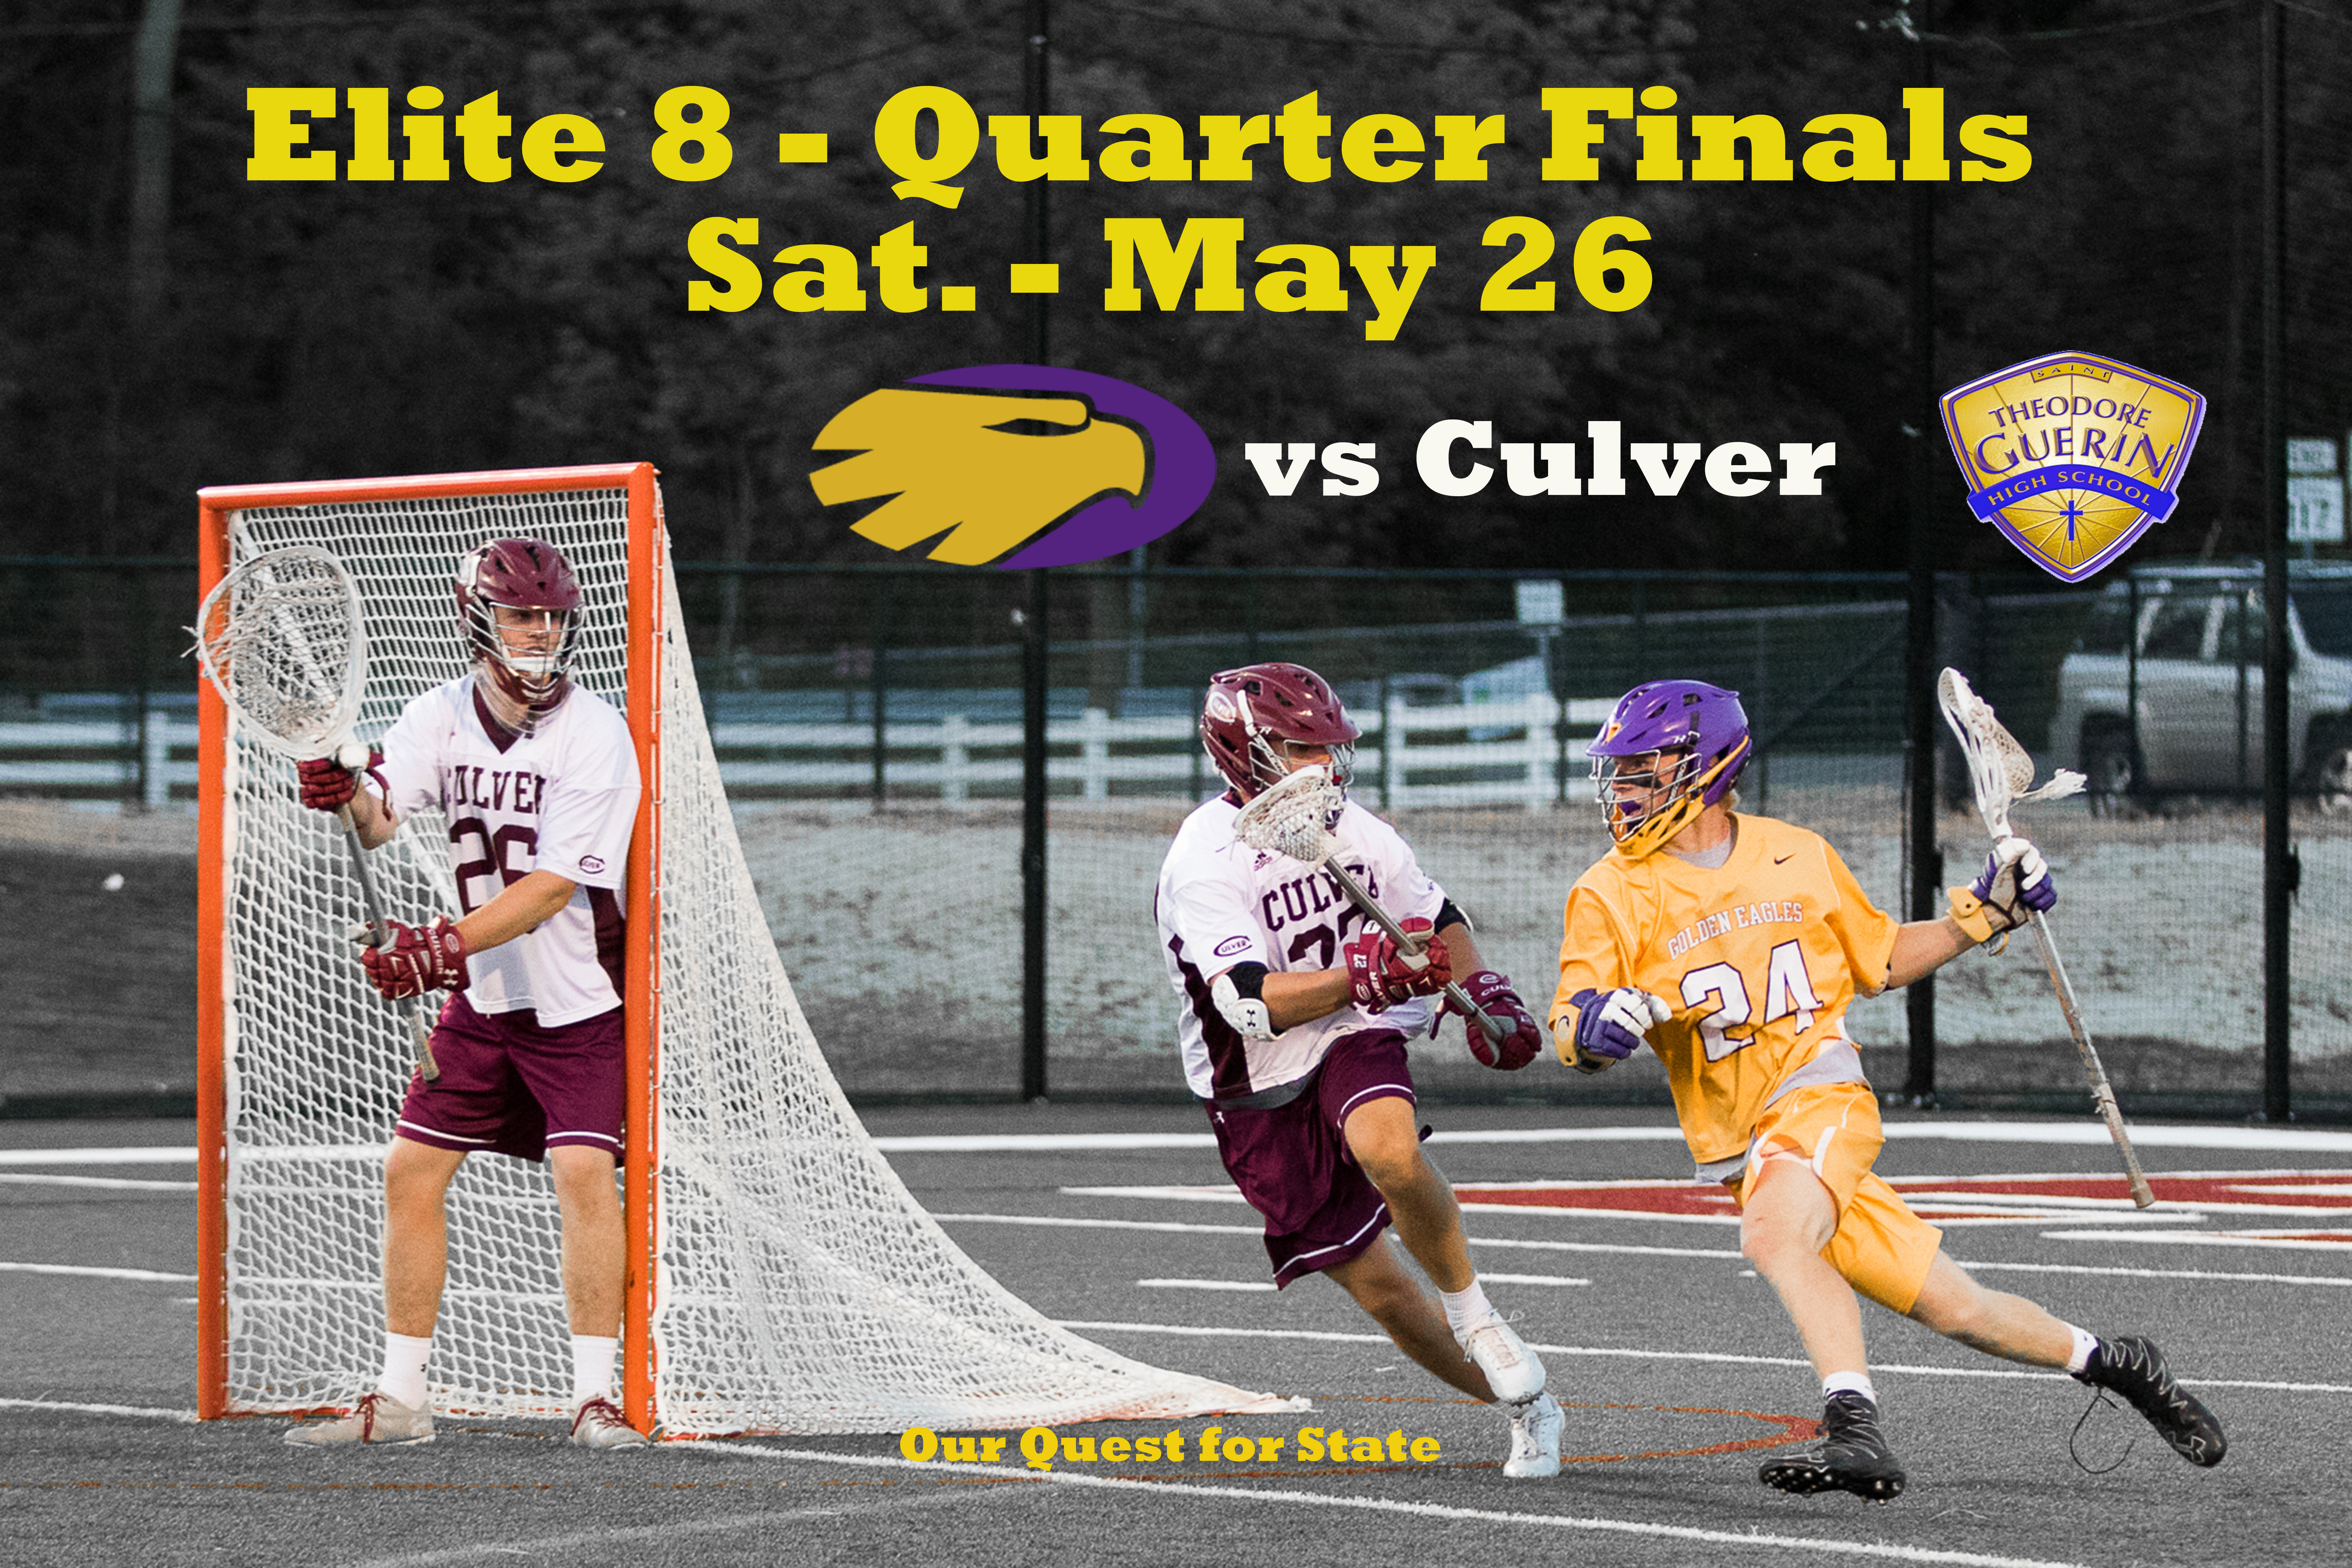 Golden Eagles to advance to the IHSLA Elite 8 this Sat. – May 26th vs Culver Military Academy